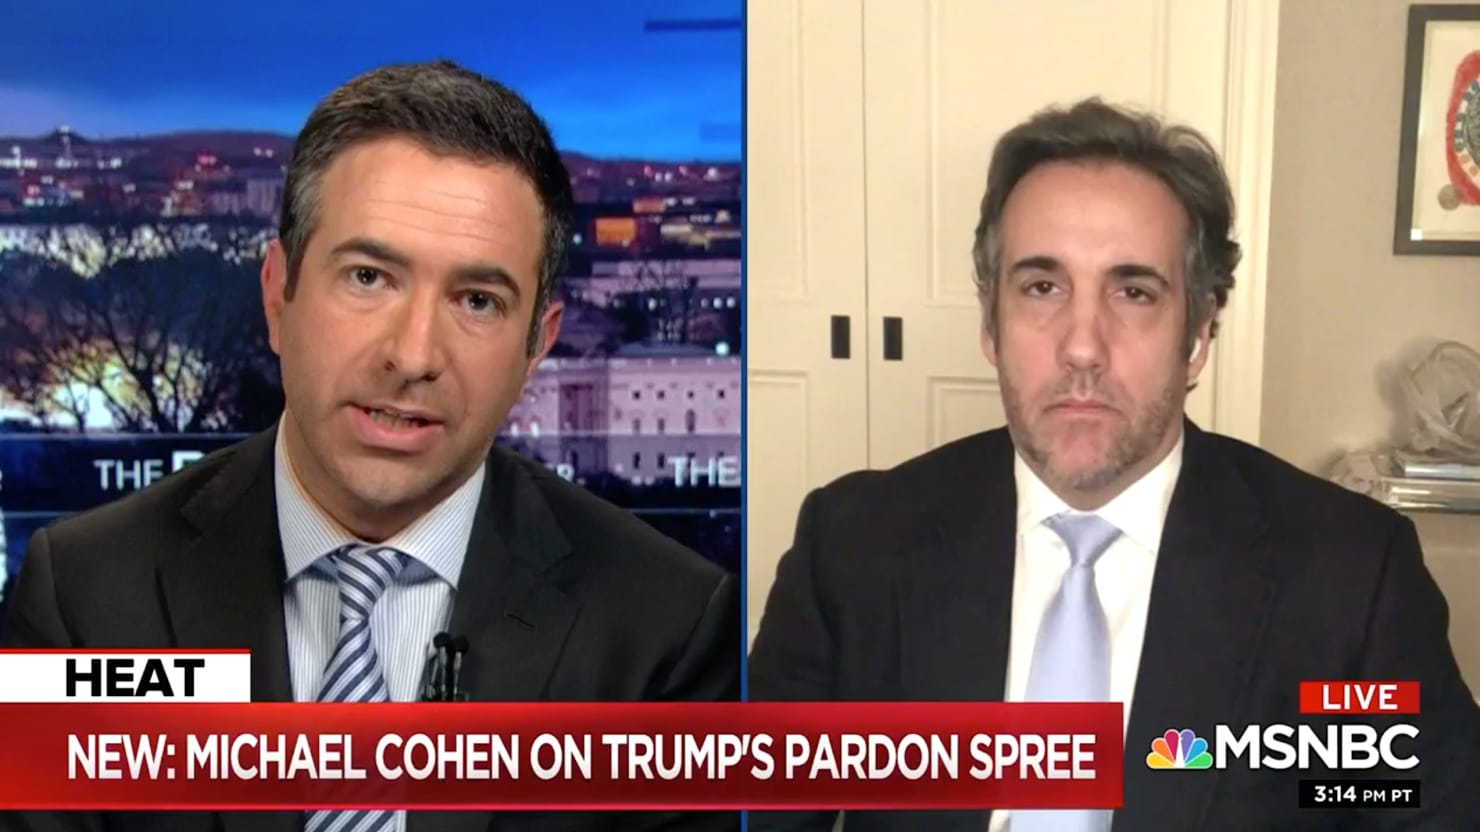 Michael Cohen Predicts Trump's Pardons 'May Ultimately Be His Downfall'